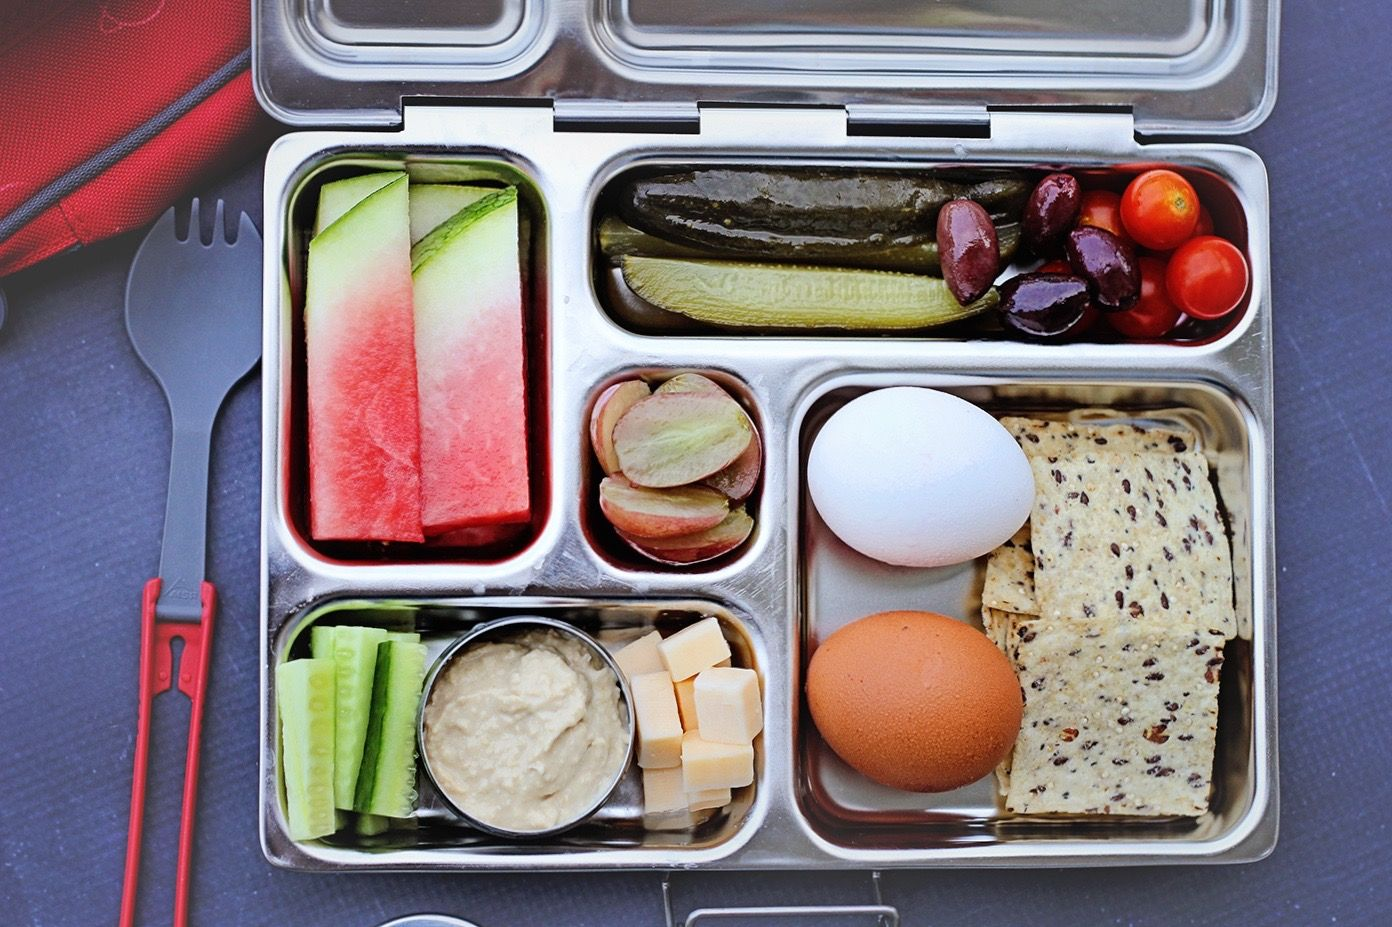 This Beautiful And Simple Lunch Is Made By Simply Whole Foods In A PlanetBox Rover